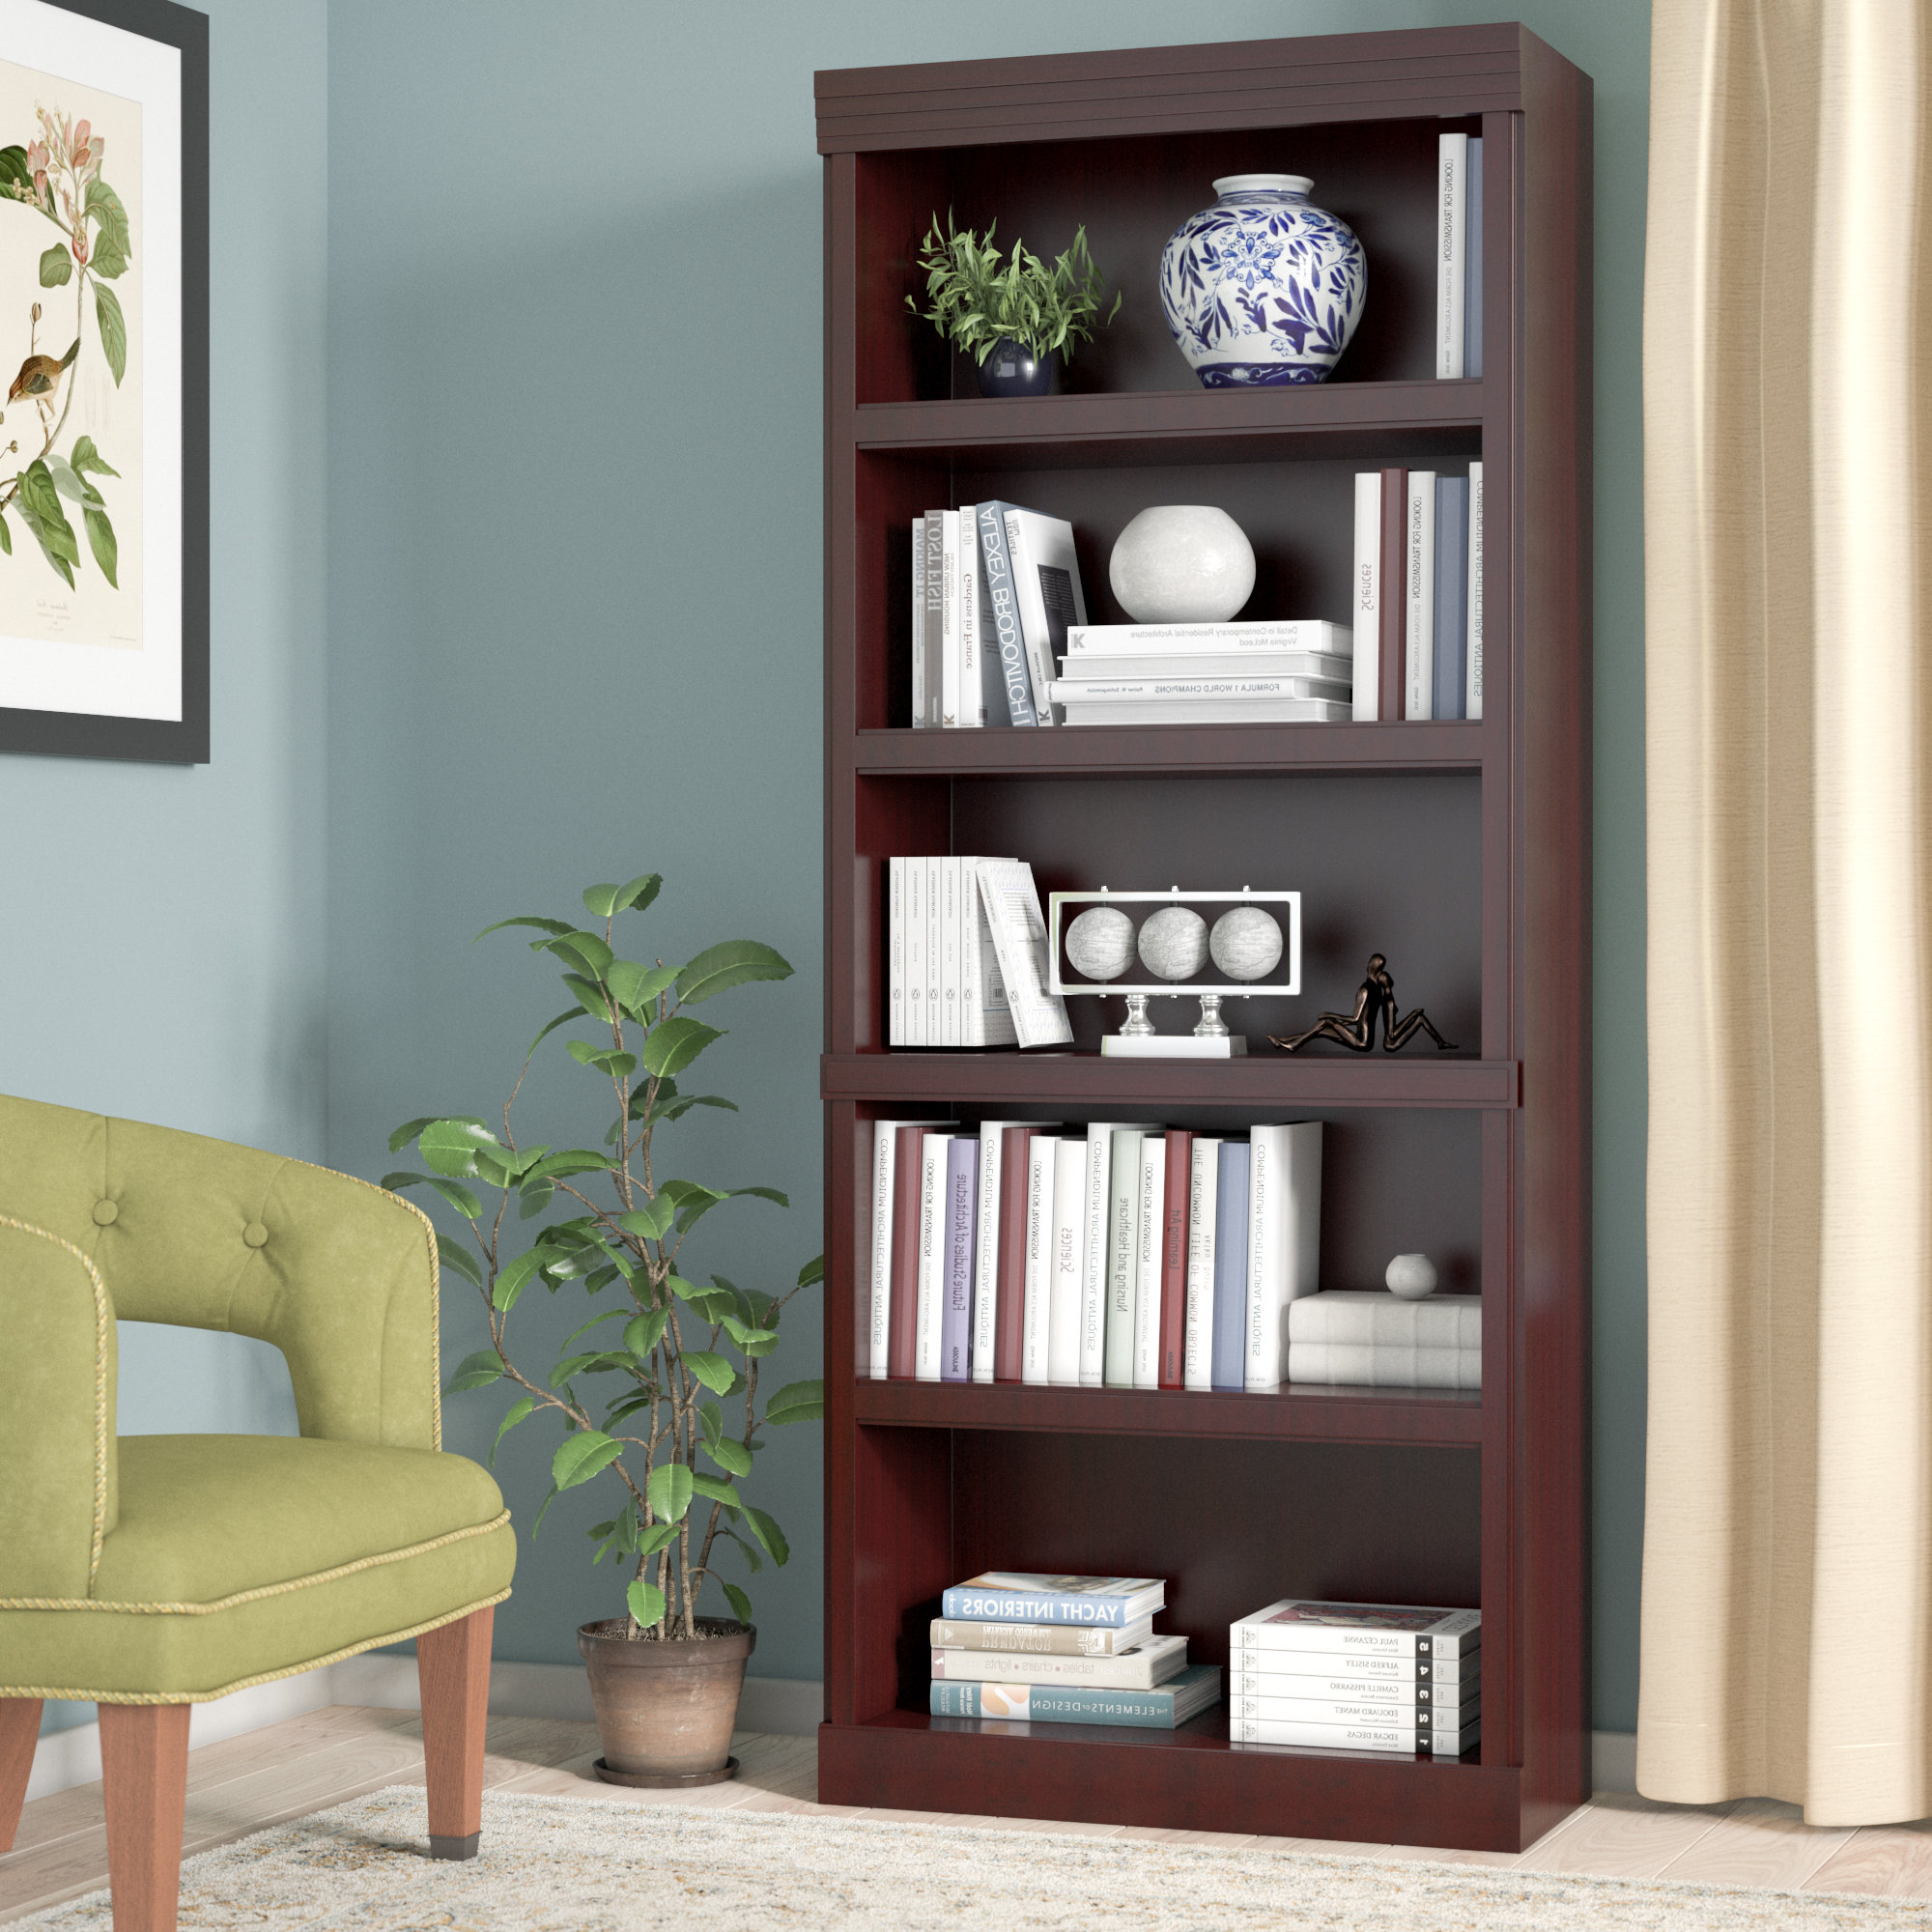 Most Popular Bookcases Sale You'll Love In (View 20 of 20)